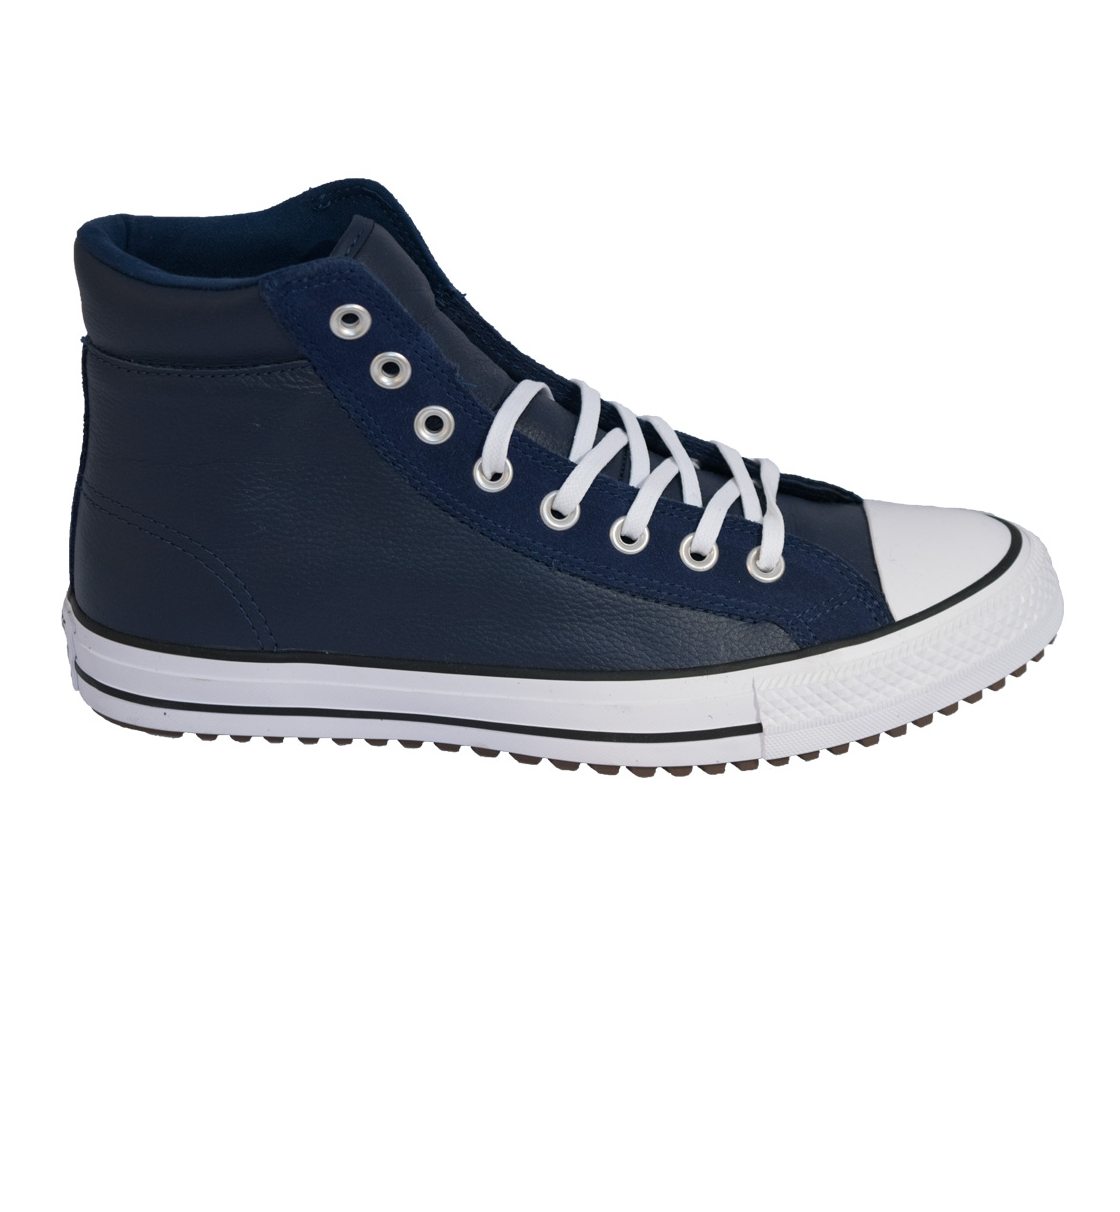 Converse Ανδρικό Παπούτσι Μόδας Chuck Taylor All Star Boot Pc 157495C